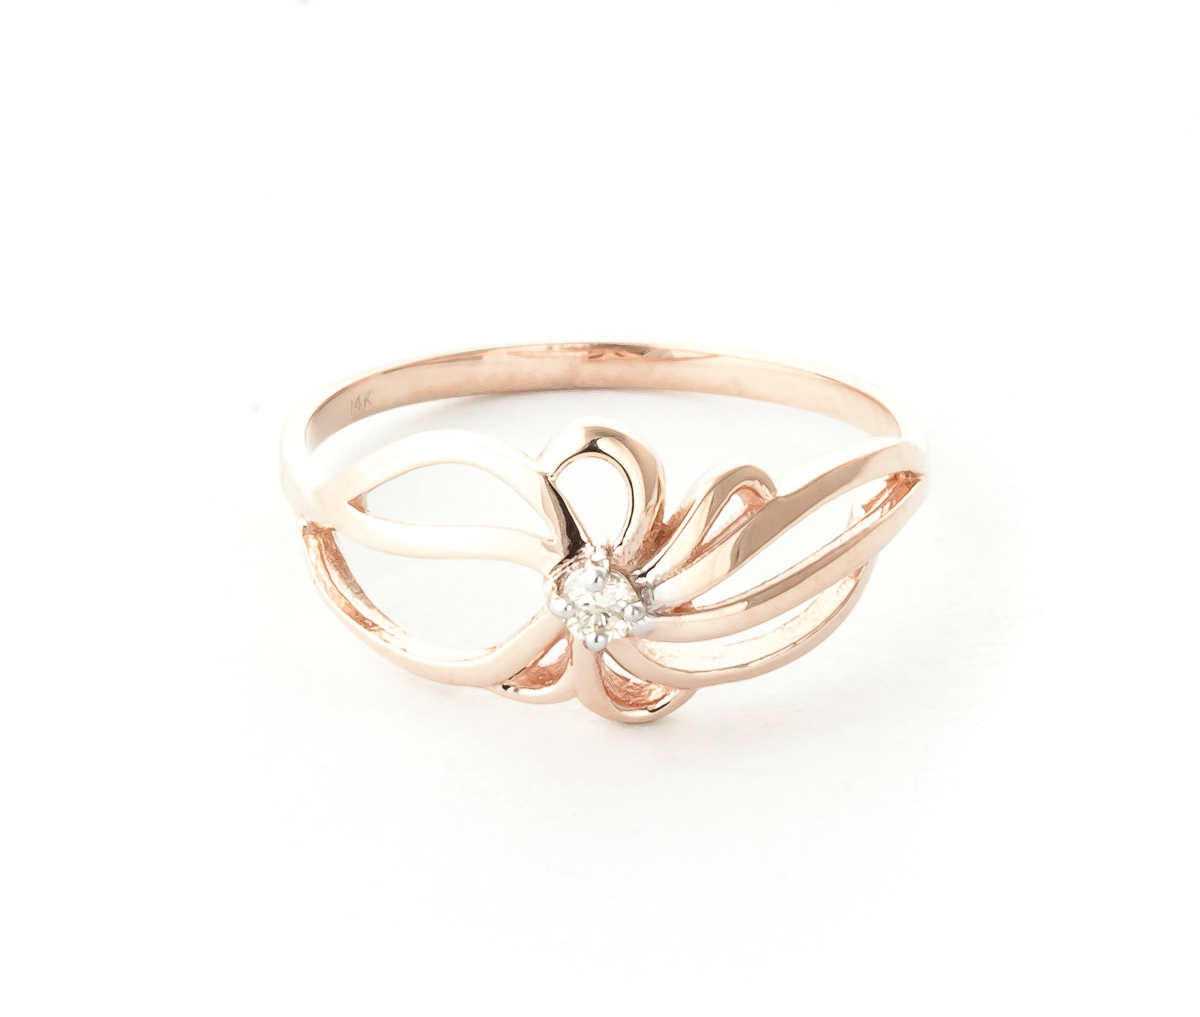 Round Cut Diamond Ring 0.05 ct in 18ct Rose Gold